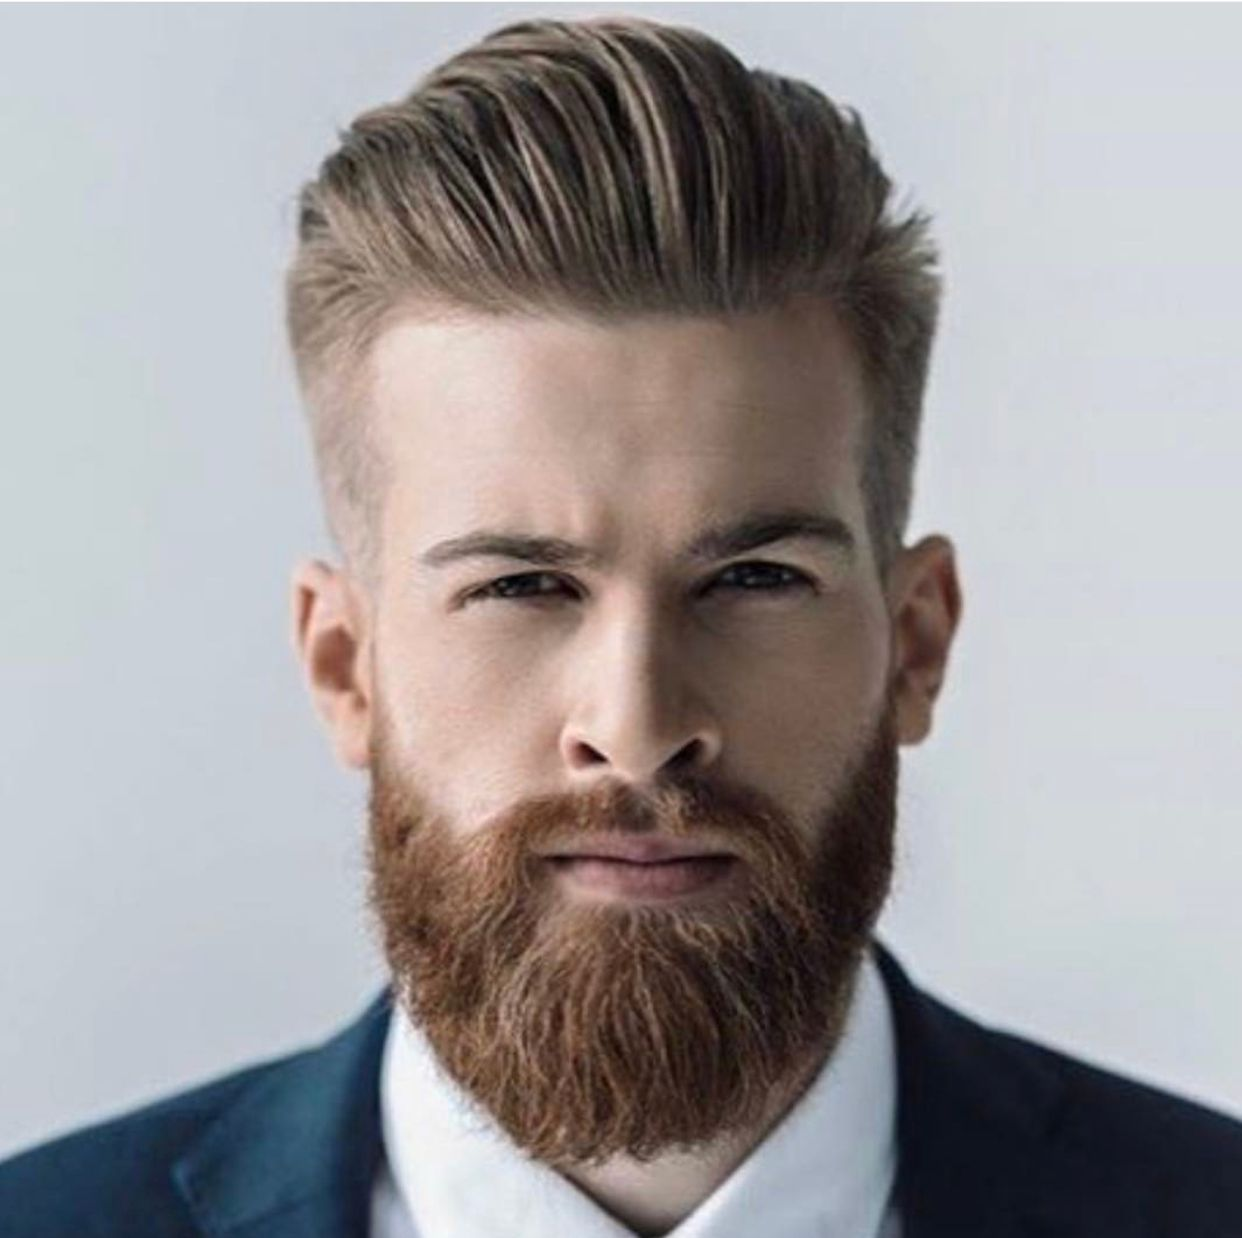 Pin by ali walker on portrait photography pinterest hair style